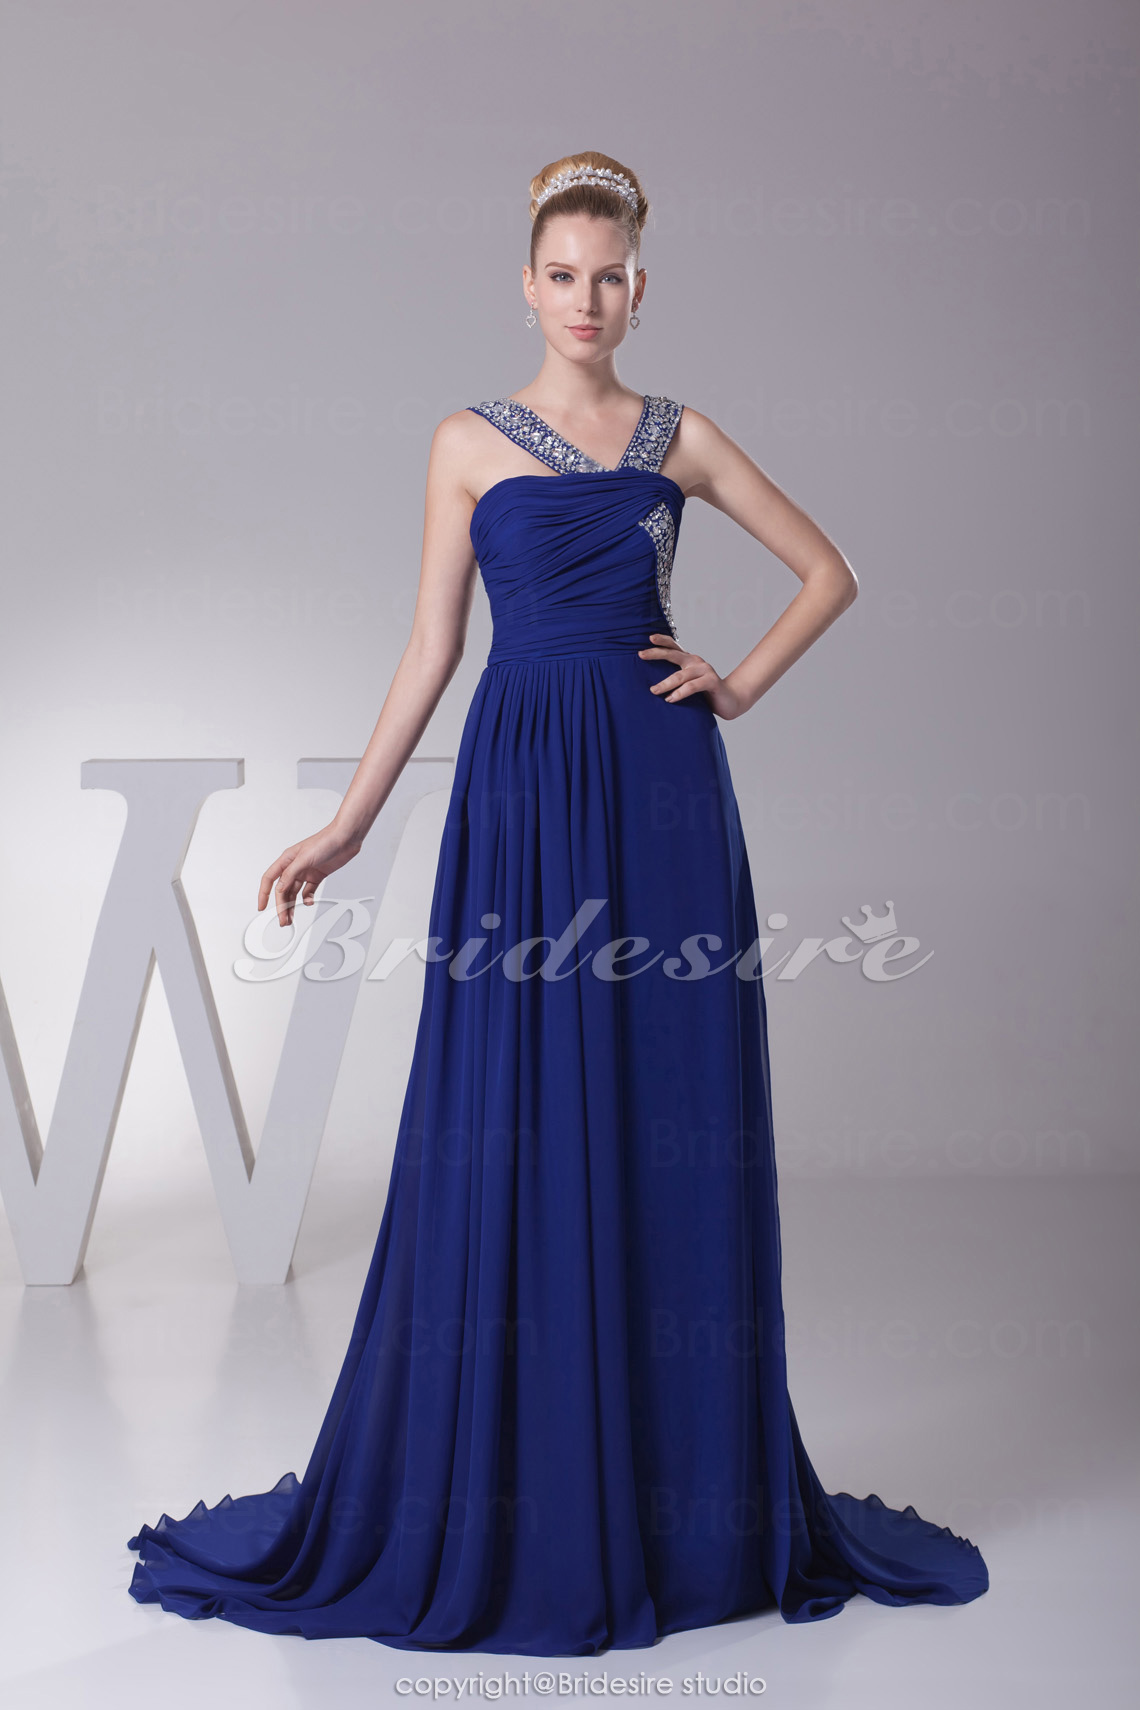 A-line Straps Court Train Sleeveless Chiffon Dress